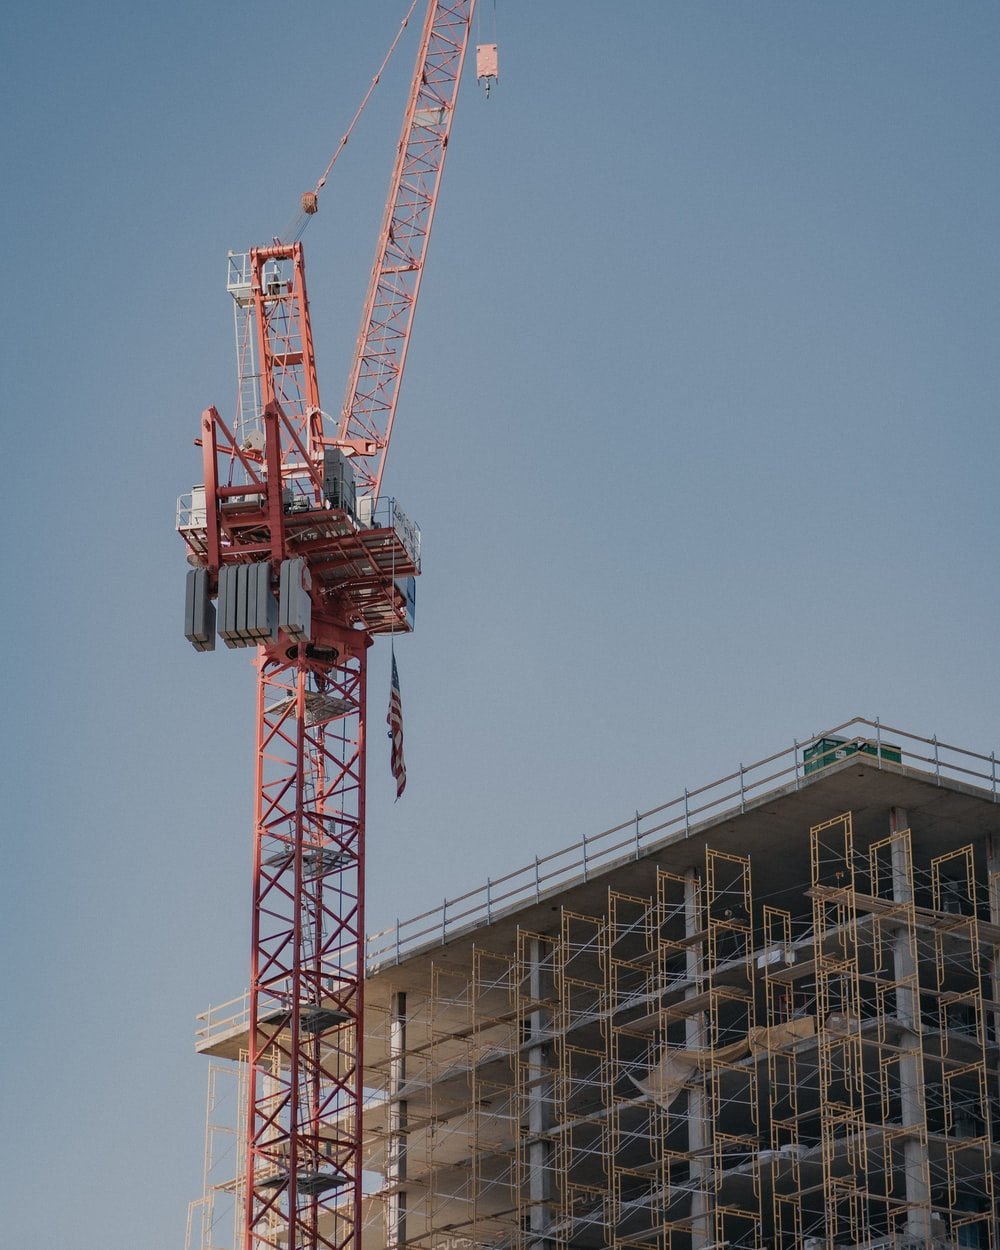 red crane near building during daytime